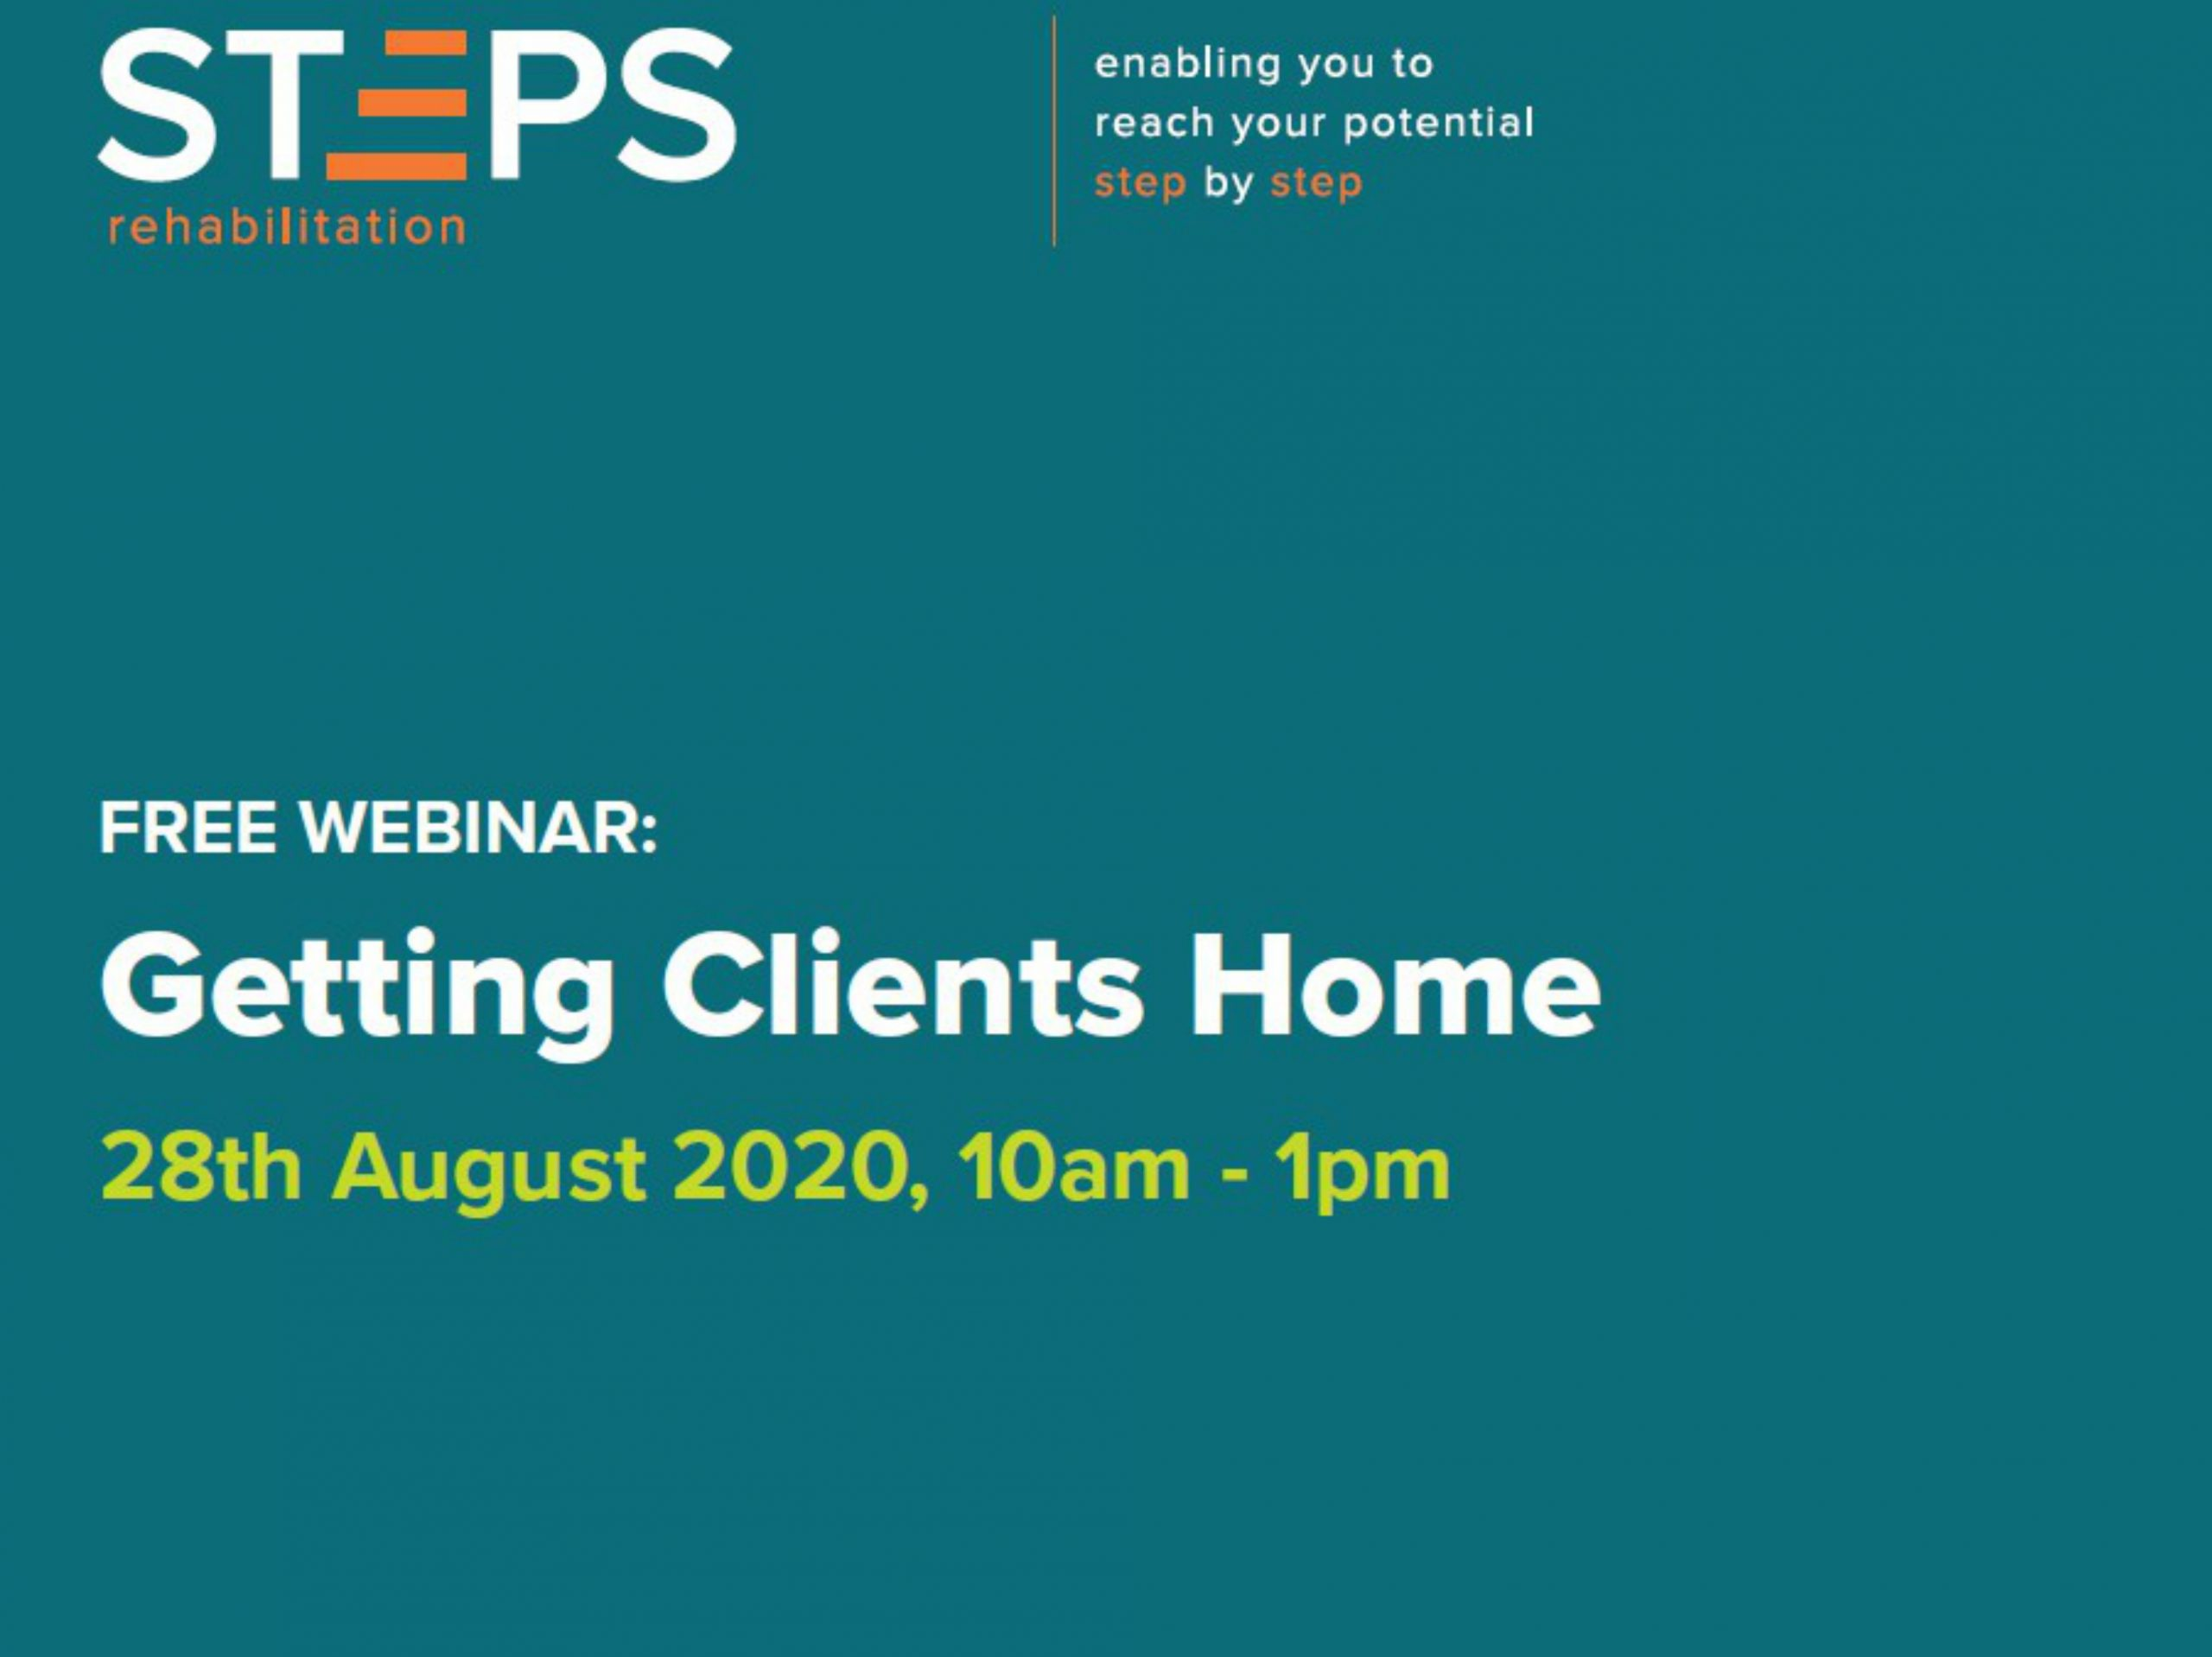 Getting Clients Home Webinar